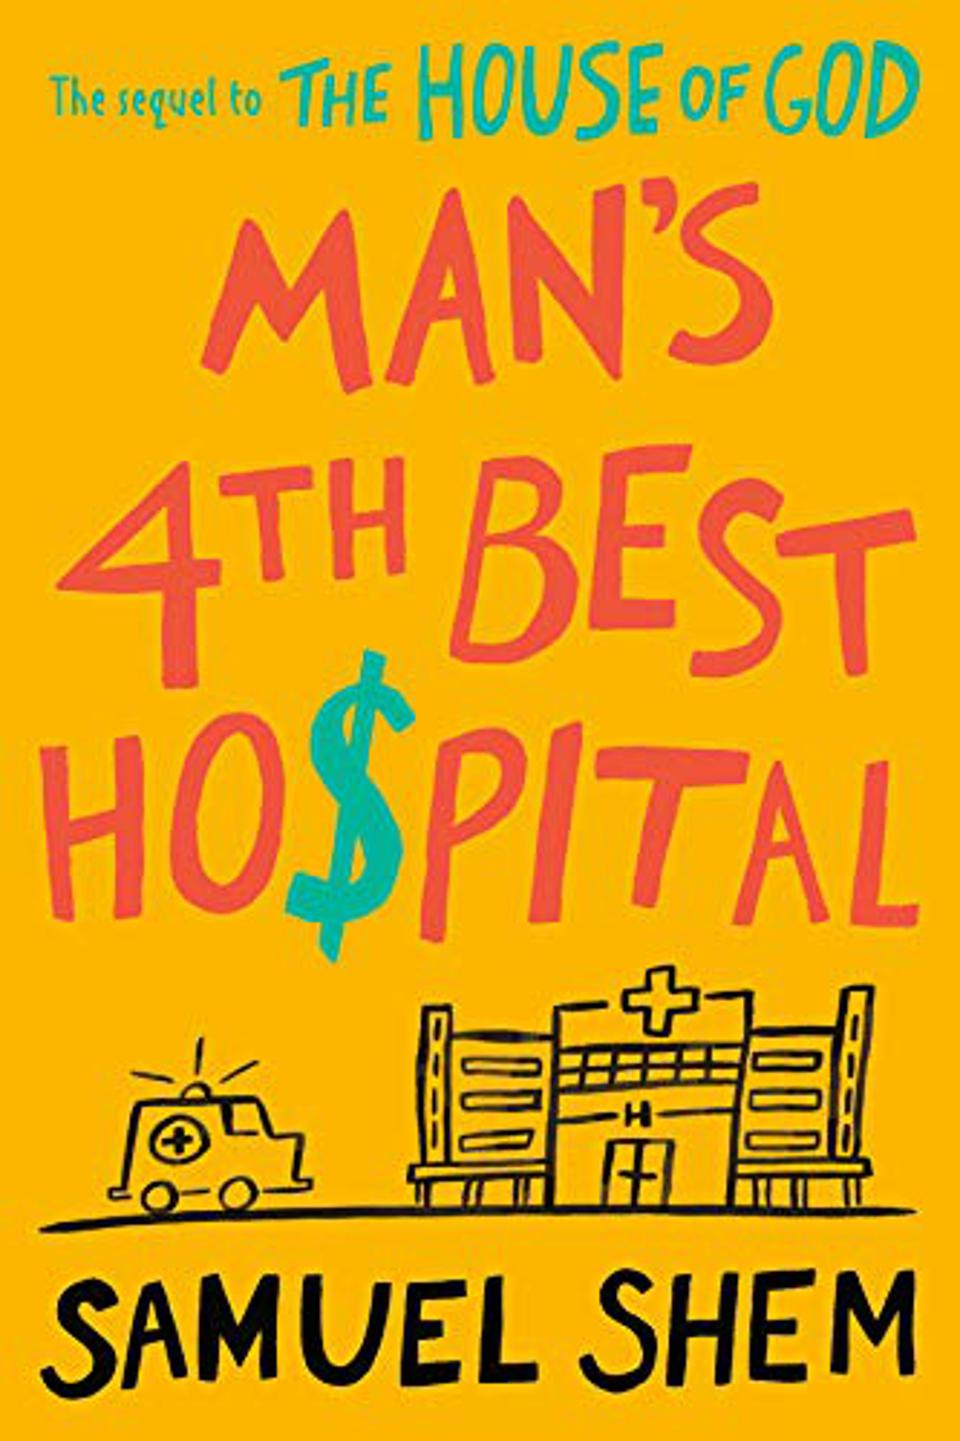 Man's 4th Best Hospital cover